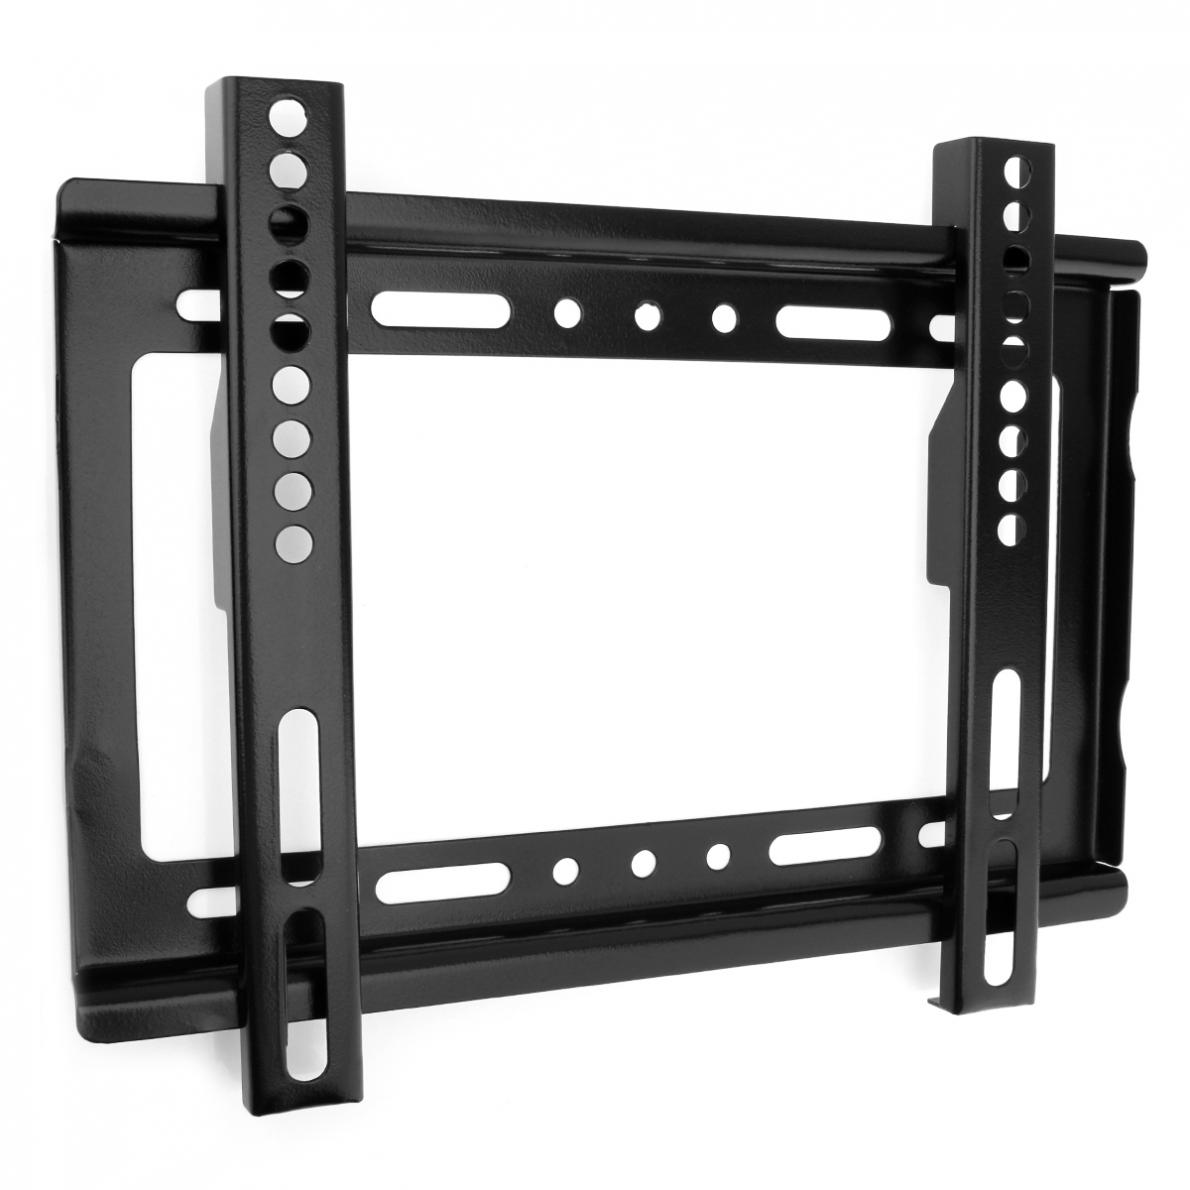 hot sales universal tv wall mount bracket for most 14. Black Bedroom Furniture Sets. Home Design Ideas